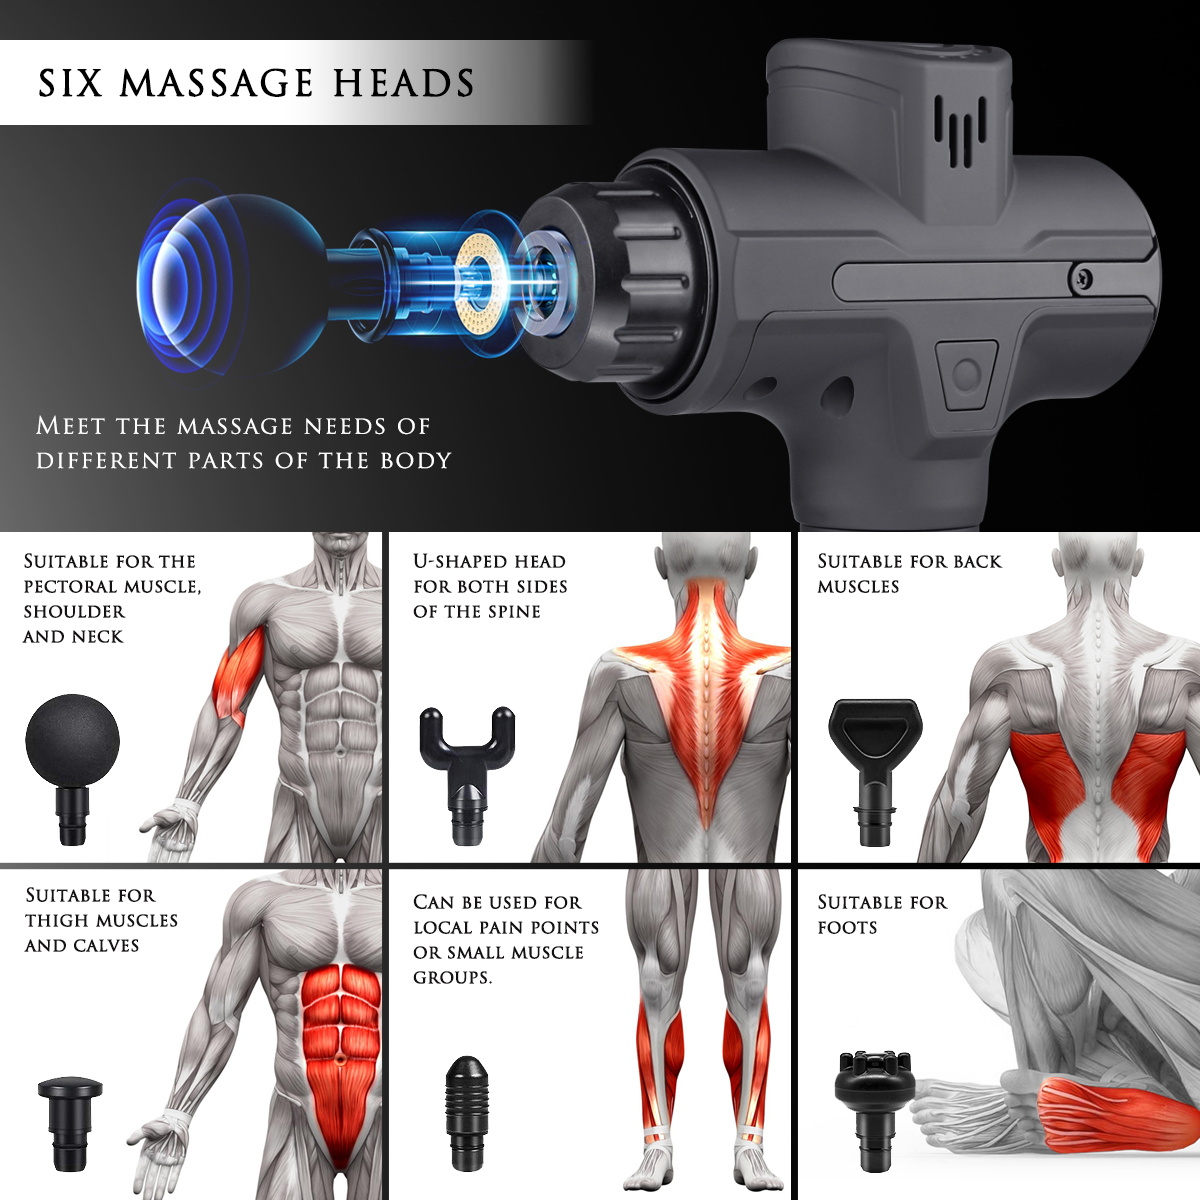 2021 New Design Brushless Massager Low Sound Vibration Muscle Massage Gun